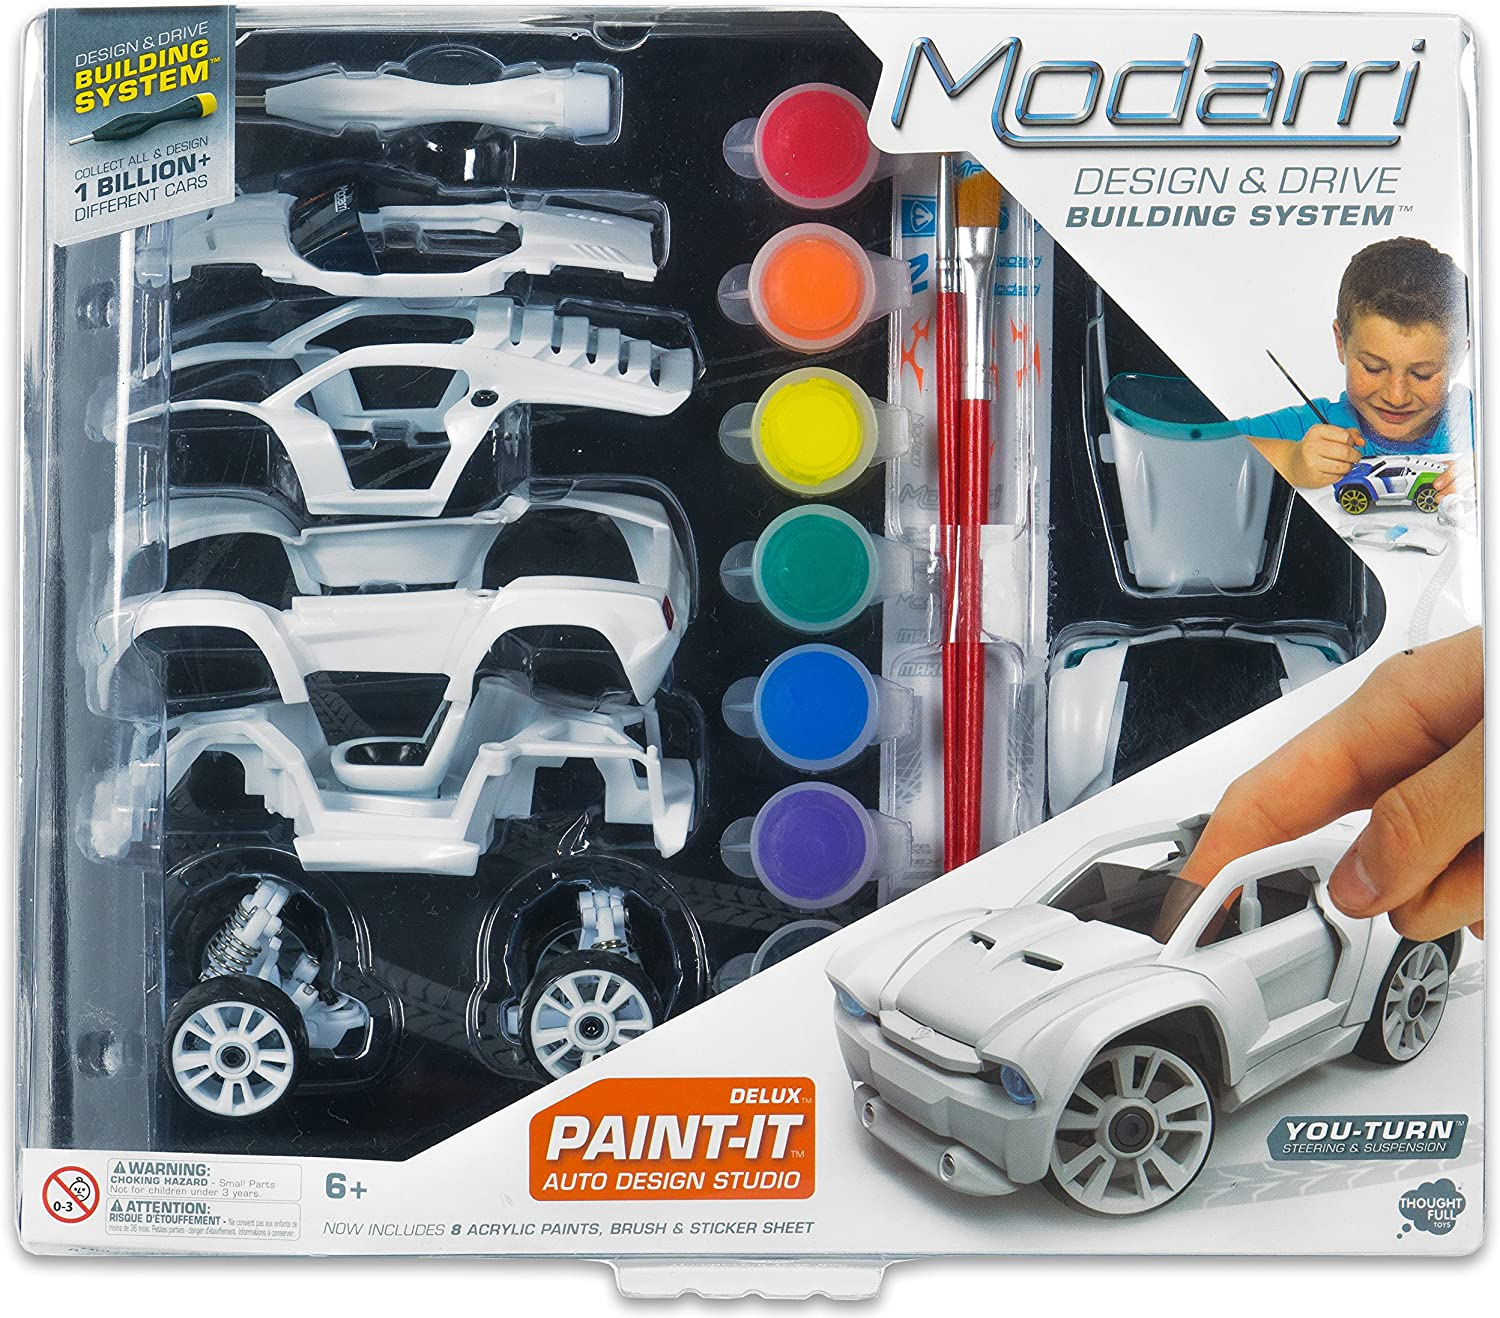 Design Your Own Car >> Modarri Delux Paint It Auto Design Studio Paint And Build Your Own Toy Car Creative Stem And Art Craft Kit Includes Paints And Brushes Make